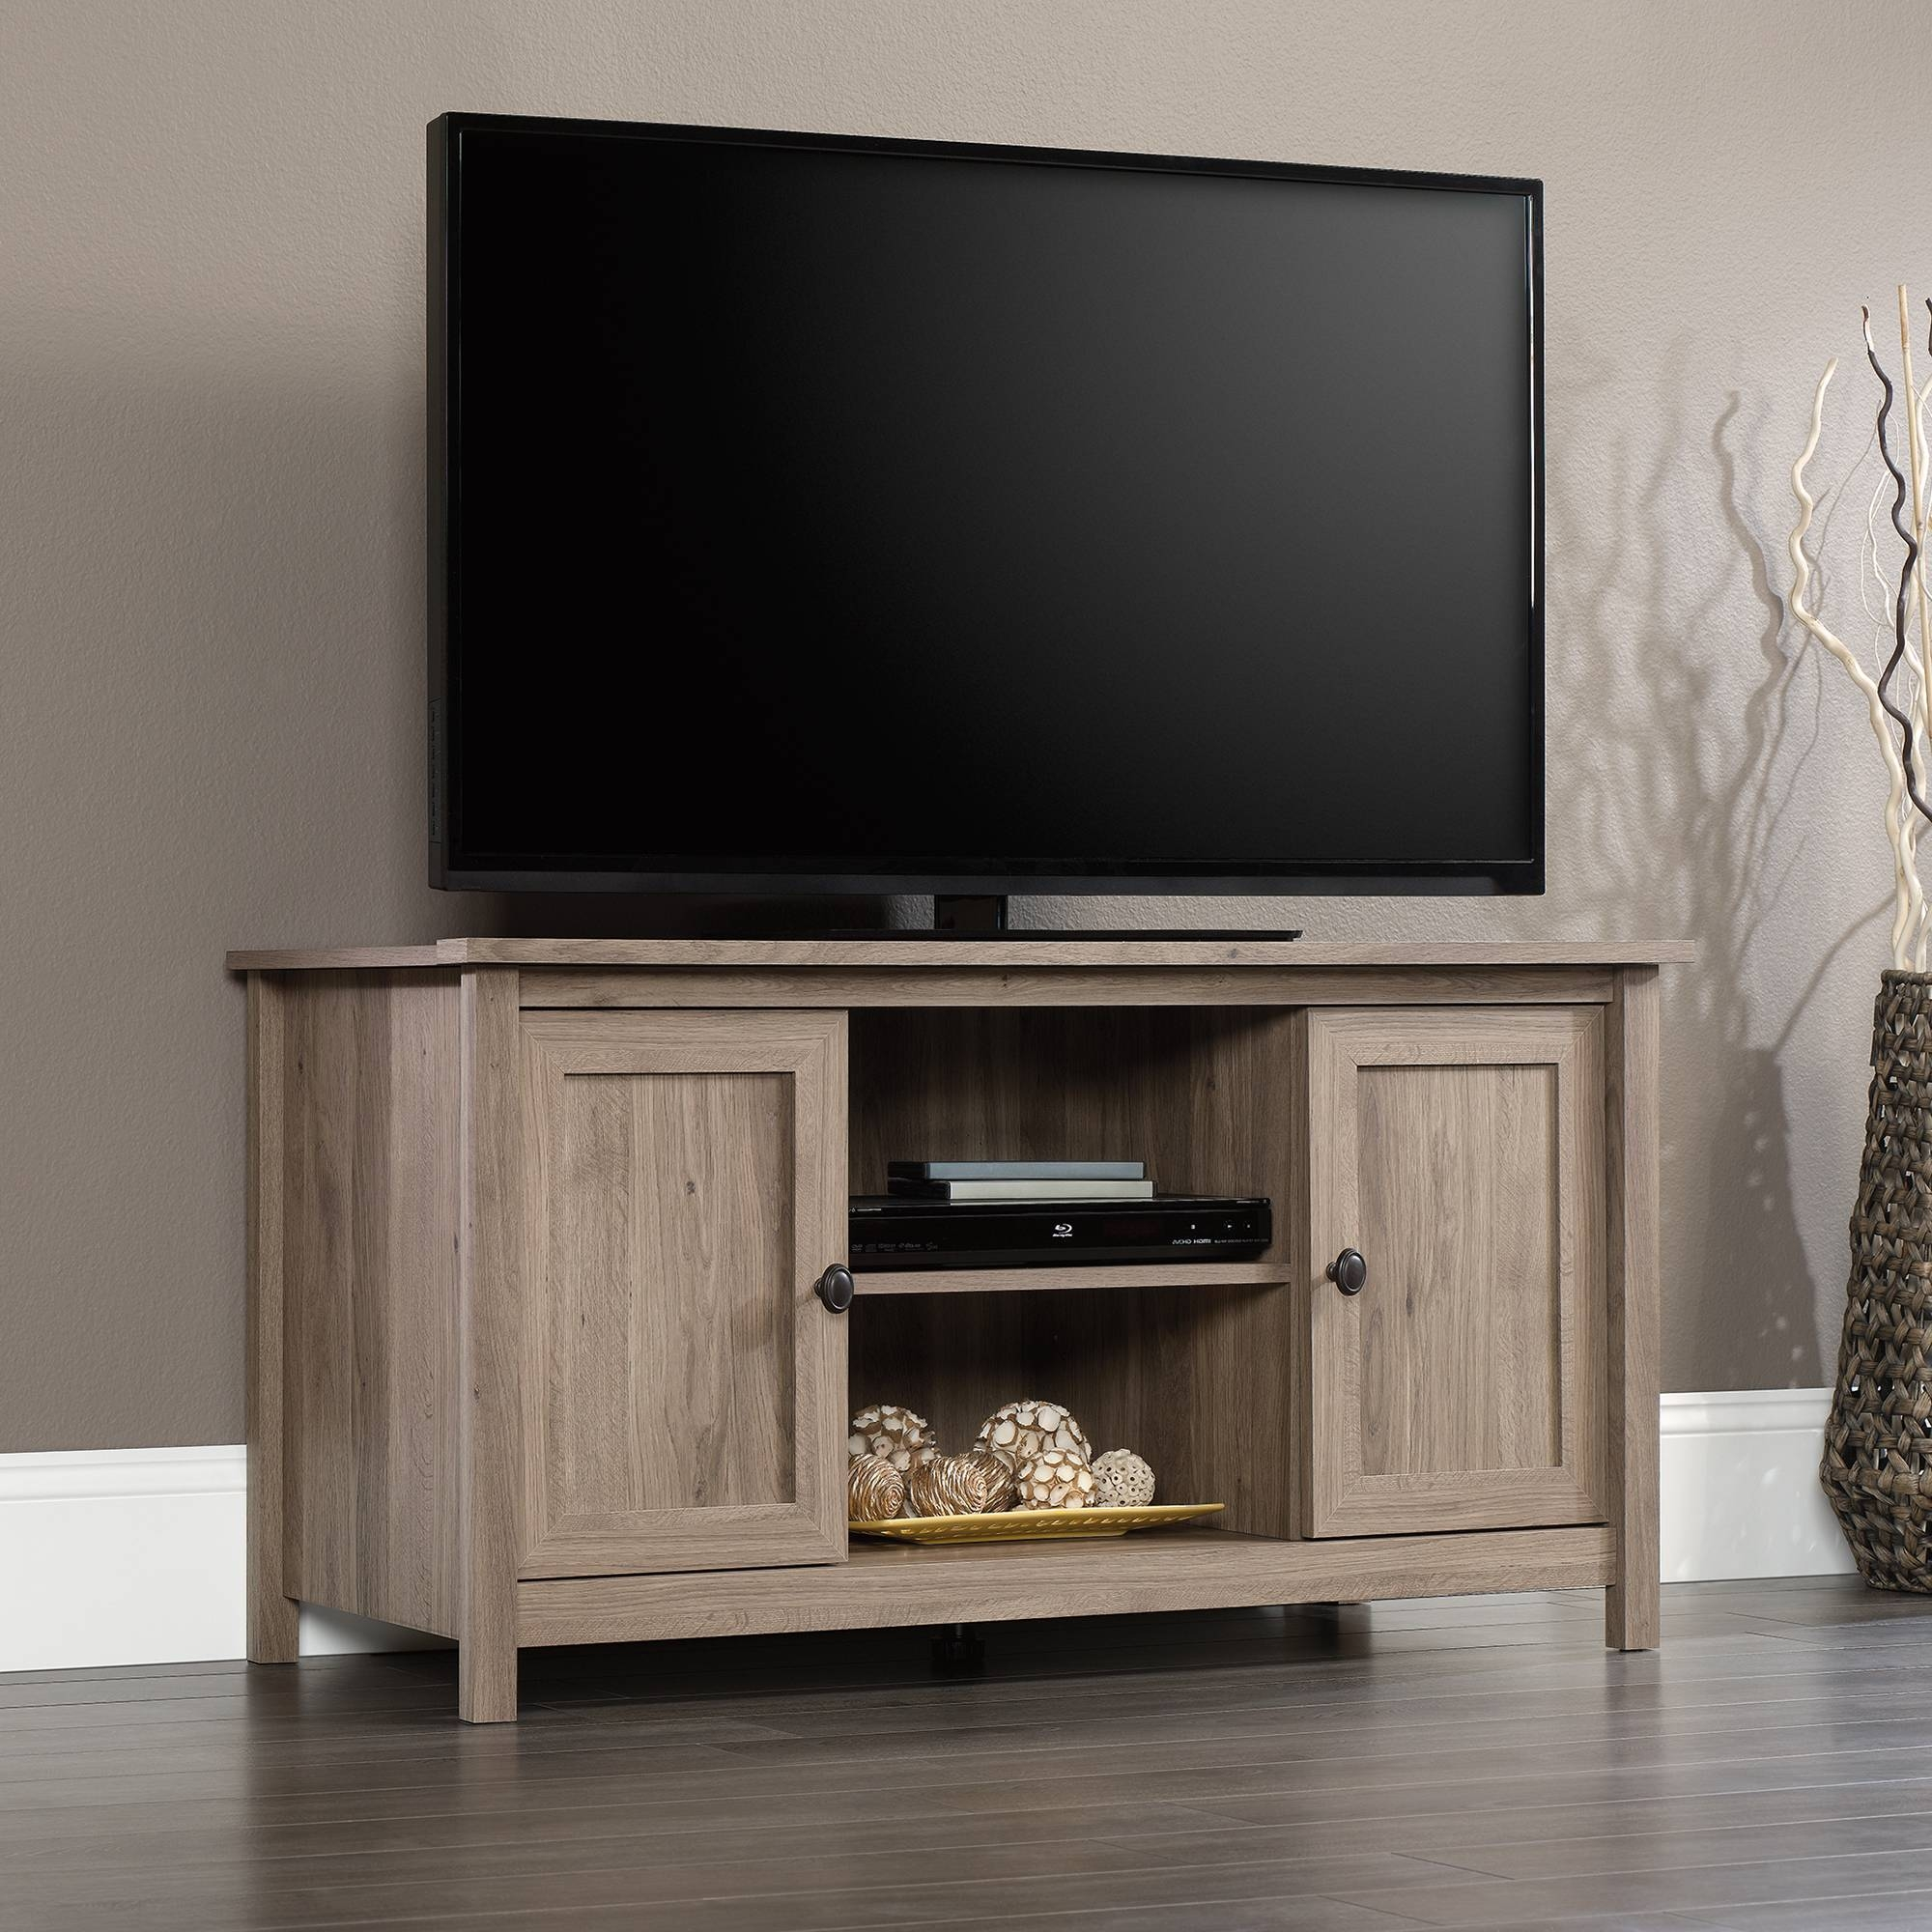 County Line | Tv Stand | 417772 | Sauder intended for Hardwood Tv Stands (Image 3 of 15)